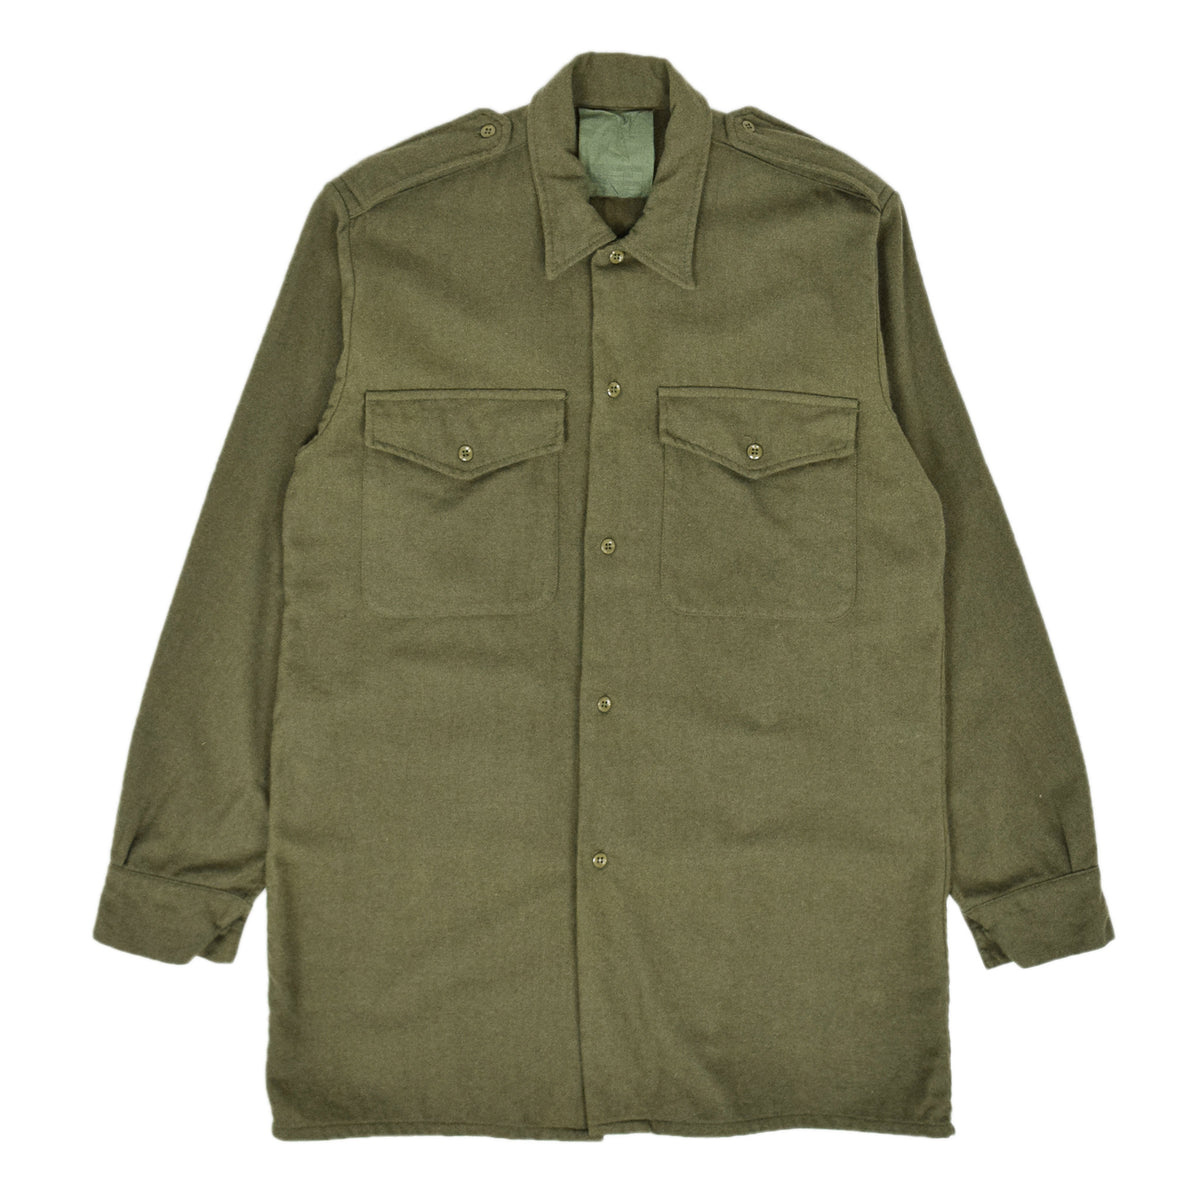 Vintage 80s British Army Mans Combat Wool Shirt Olive Green S FRONT